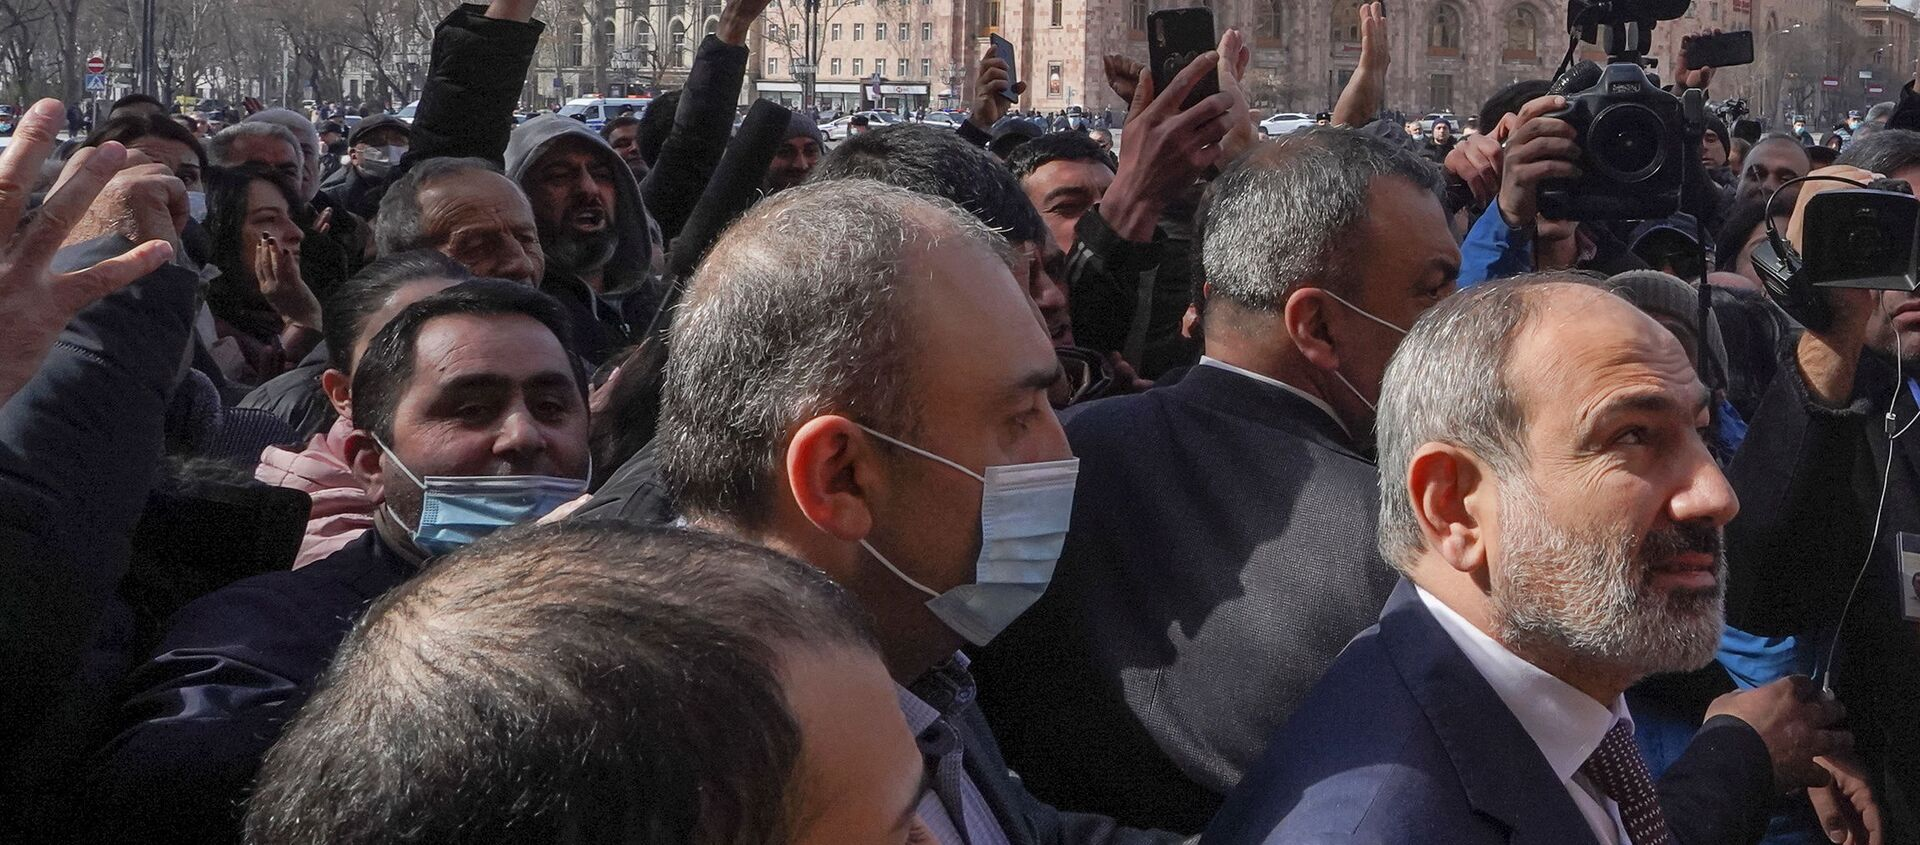 Armenian Prime Minister Nikol Pashinyan meets with participants of a gathering after he called on followers to rally in the centre of Yerevan, Armenia February 25, 2021 - Sputnik Italia, 1920, 25.02.2021